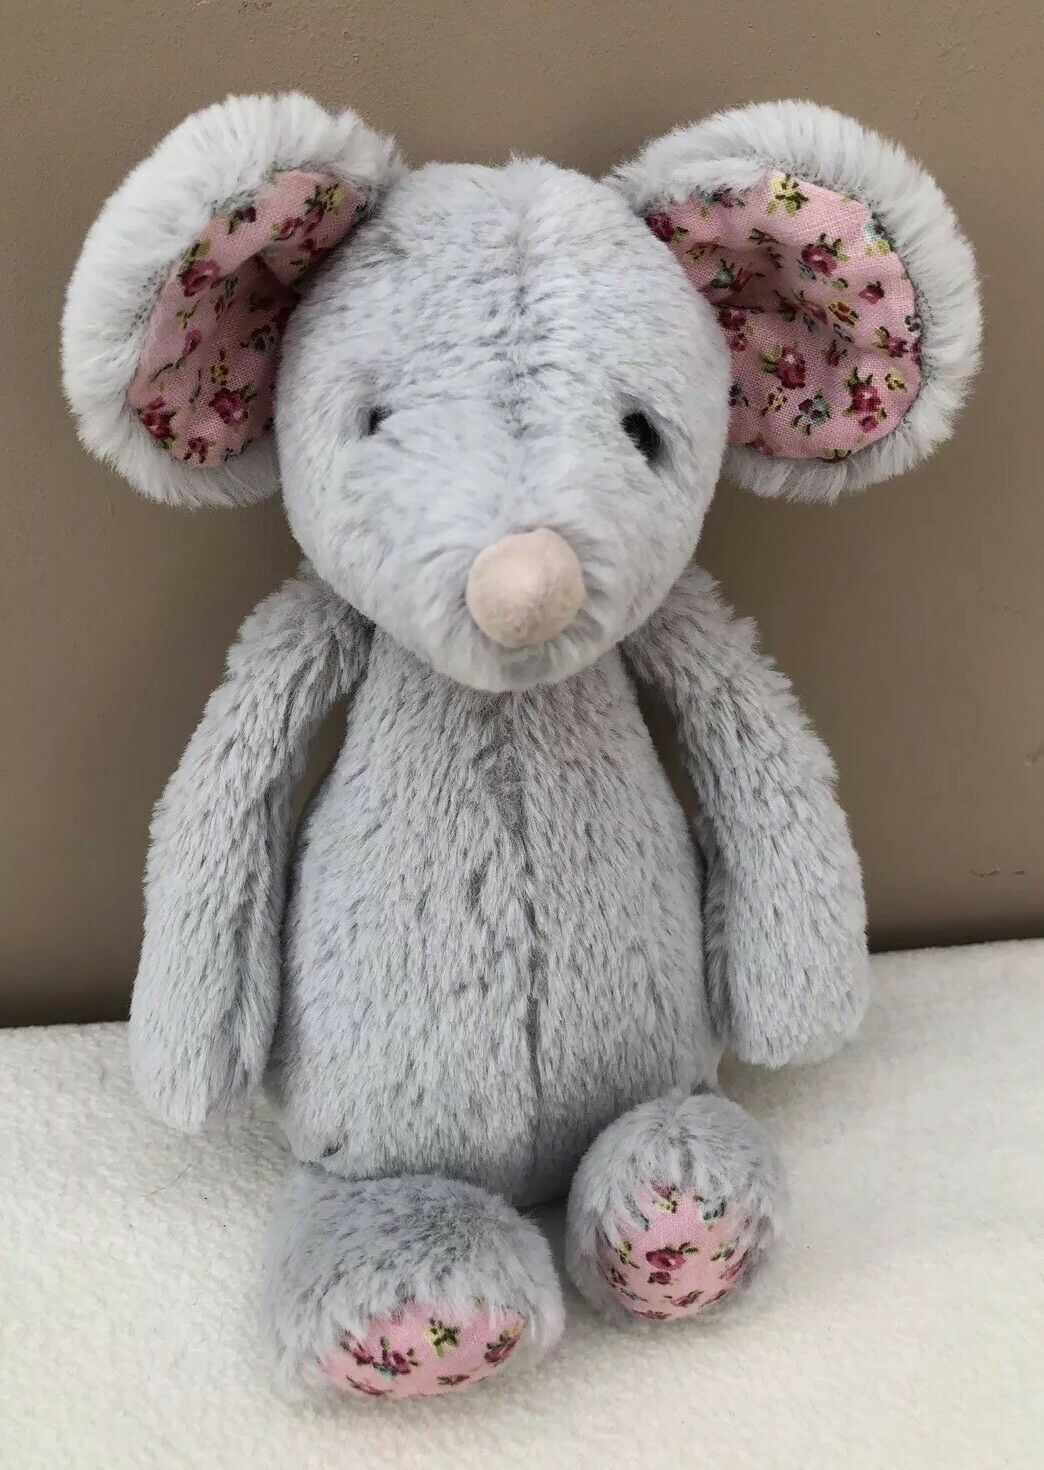 Jellycat Small Bashful Blossom Grey Mouse Soft Toy Comforter Pink Floral Ears